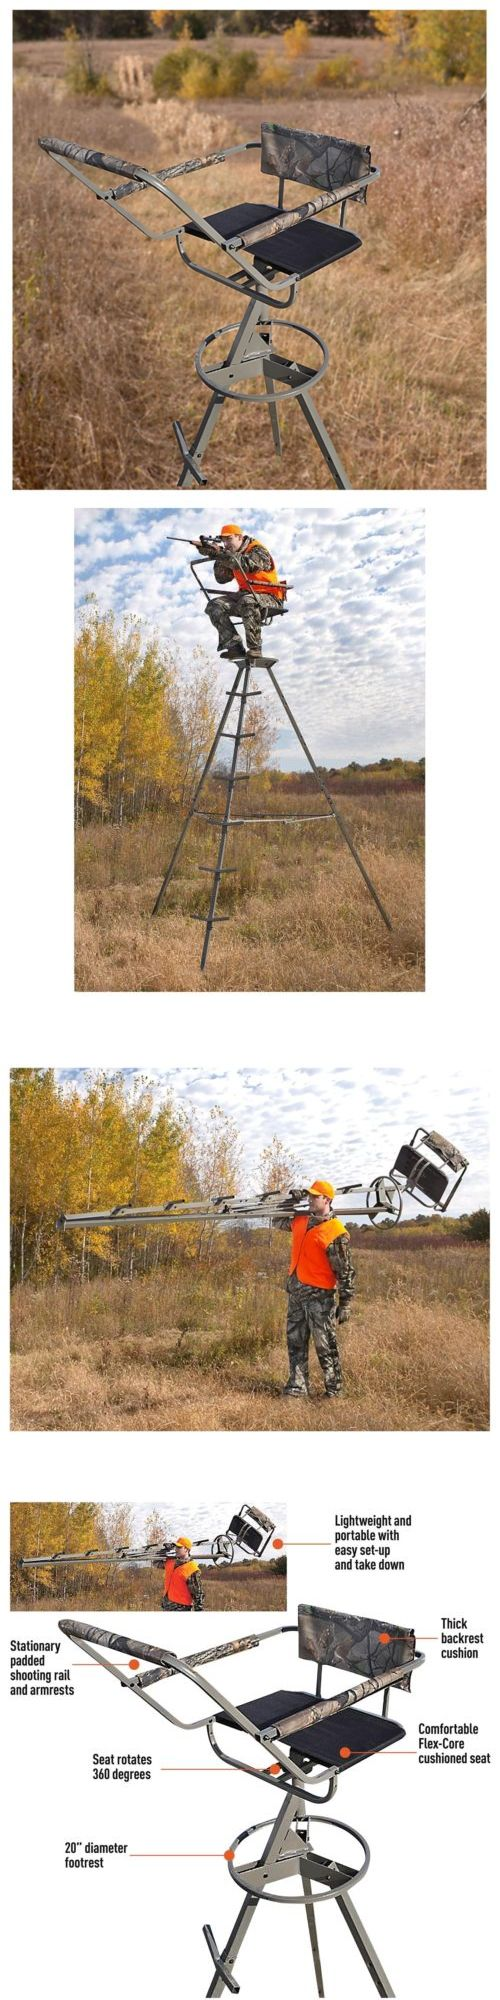 Tree Stands 52508: 12 Tripod Tree Stand 360° Big Game Hunter Deer Turkey Camo Ladder Shooting -> BUY IT NOW ONLY: $149.99 on eBay!